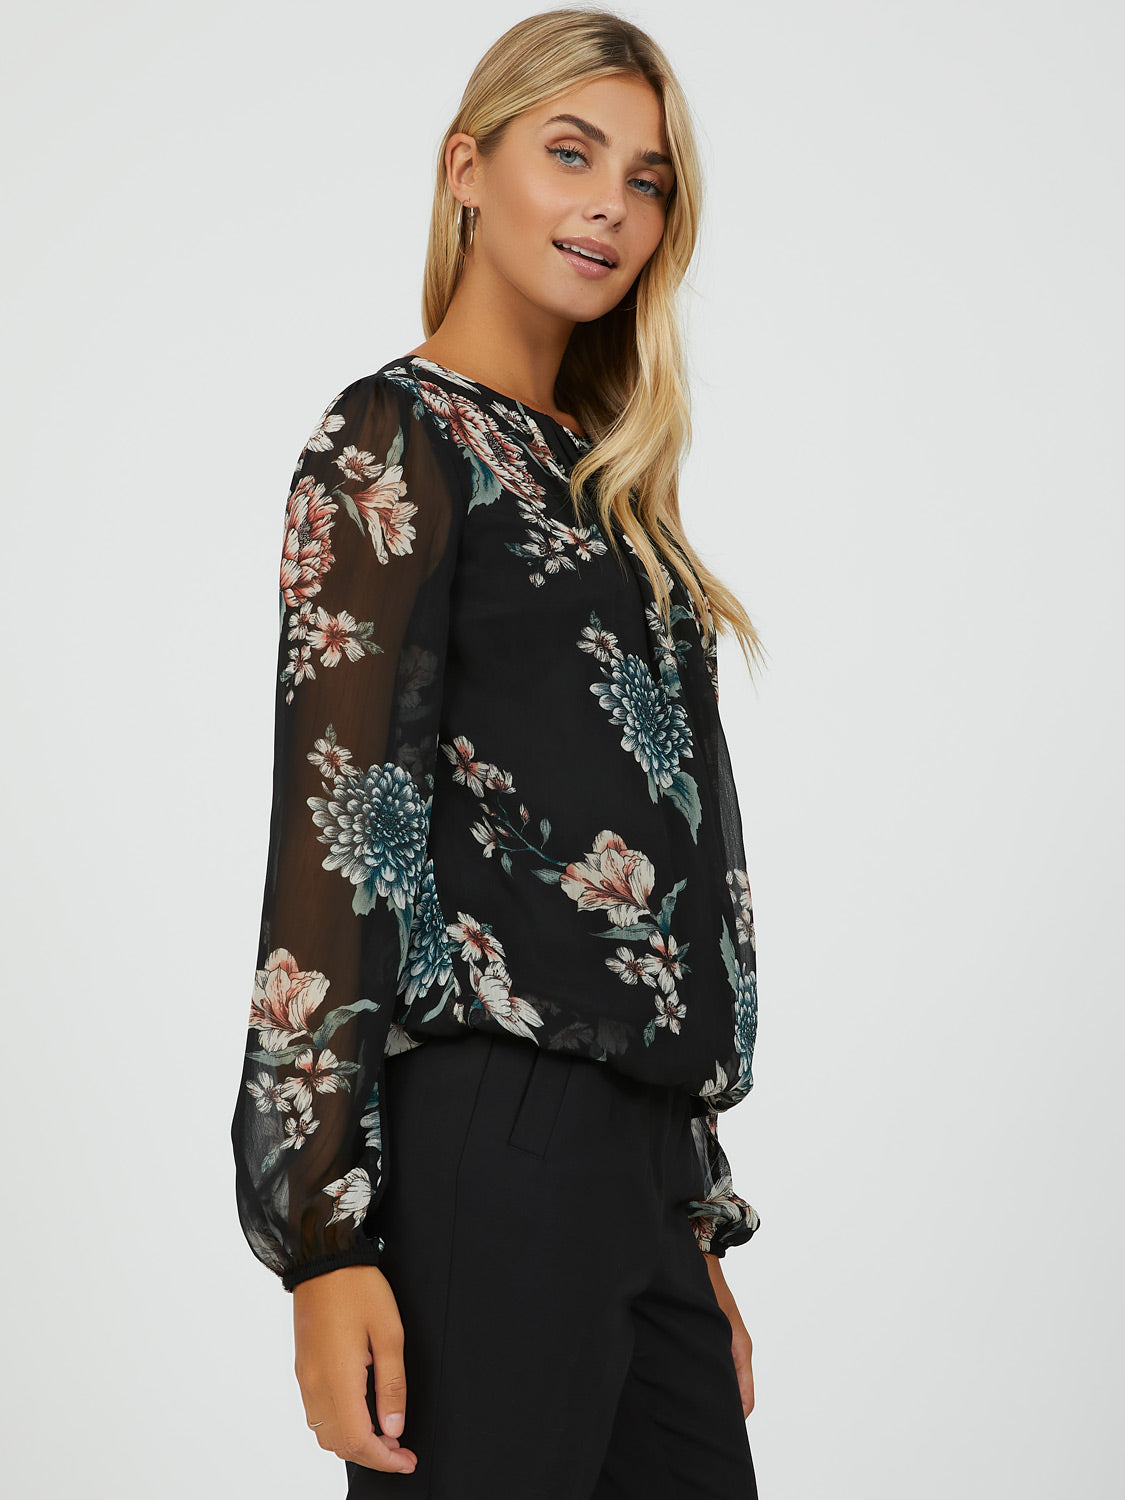 Sheer Sleeve Floral Blouse